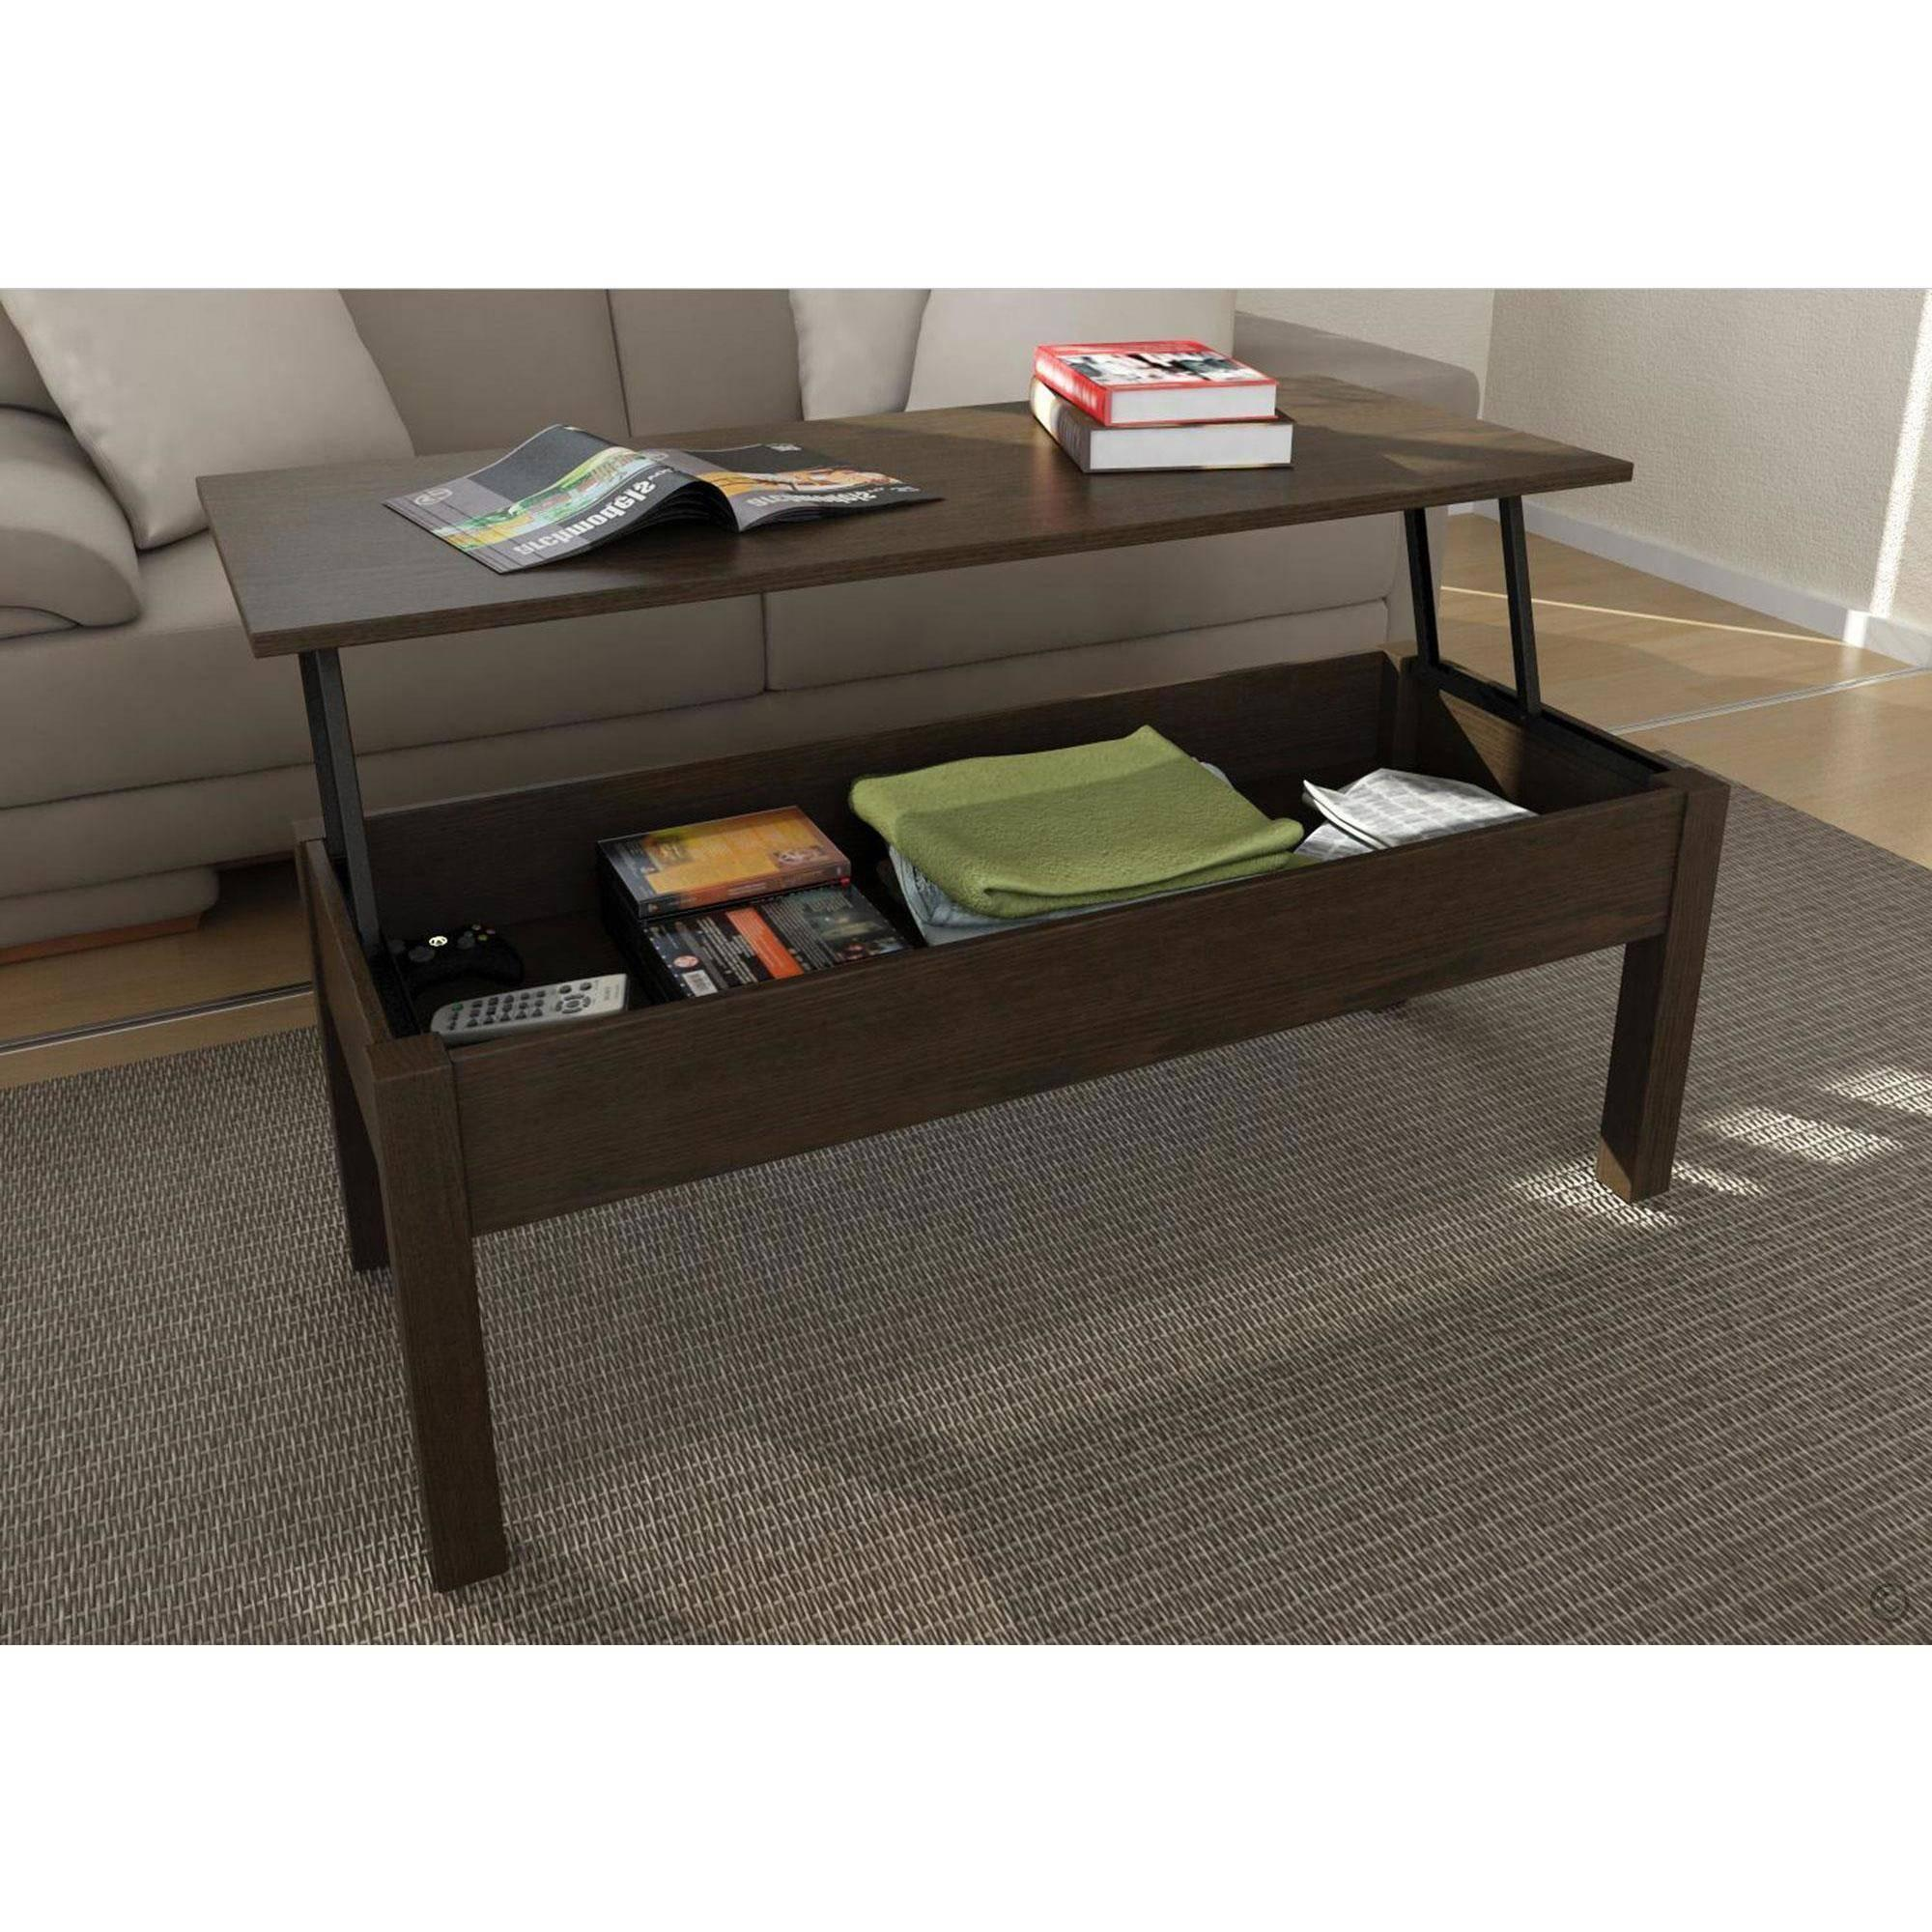 $79 Mainstays Lift-Top Coffee Table, Espresso